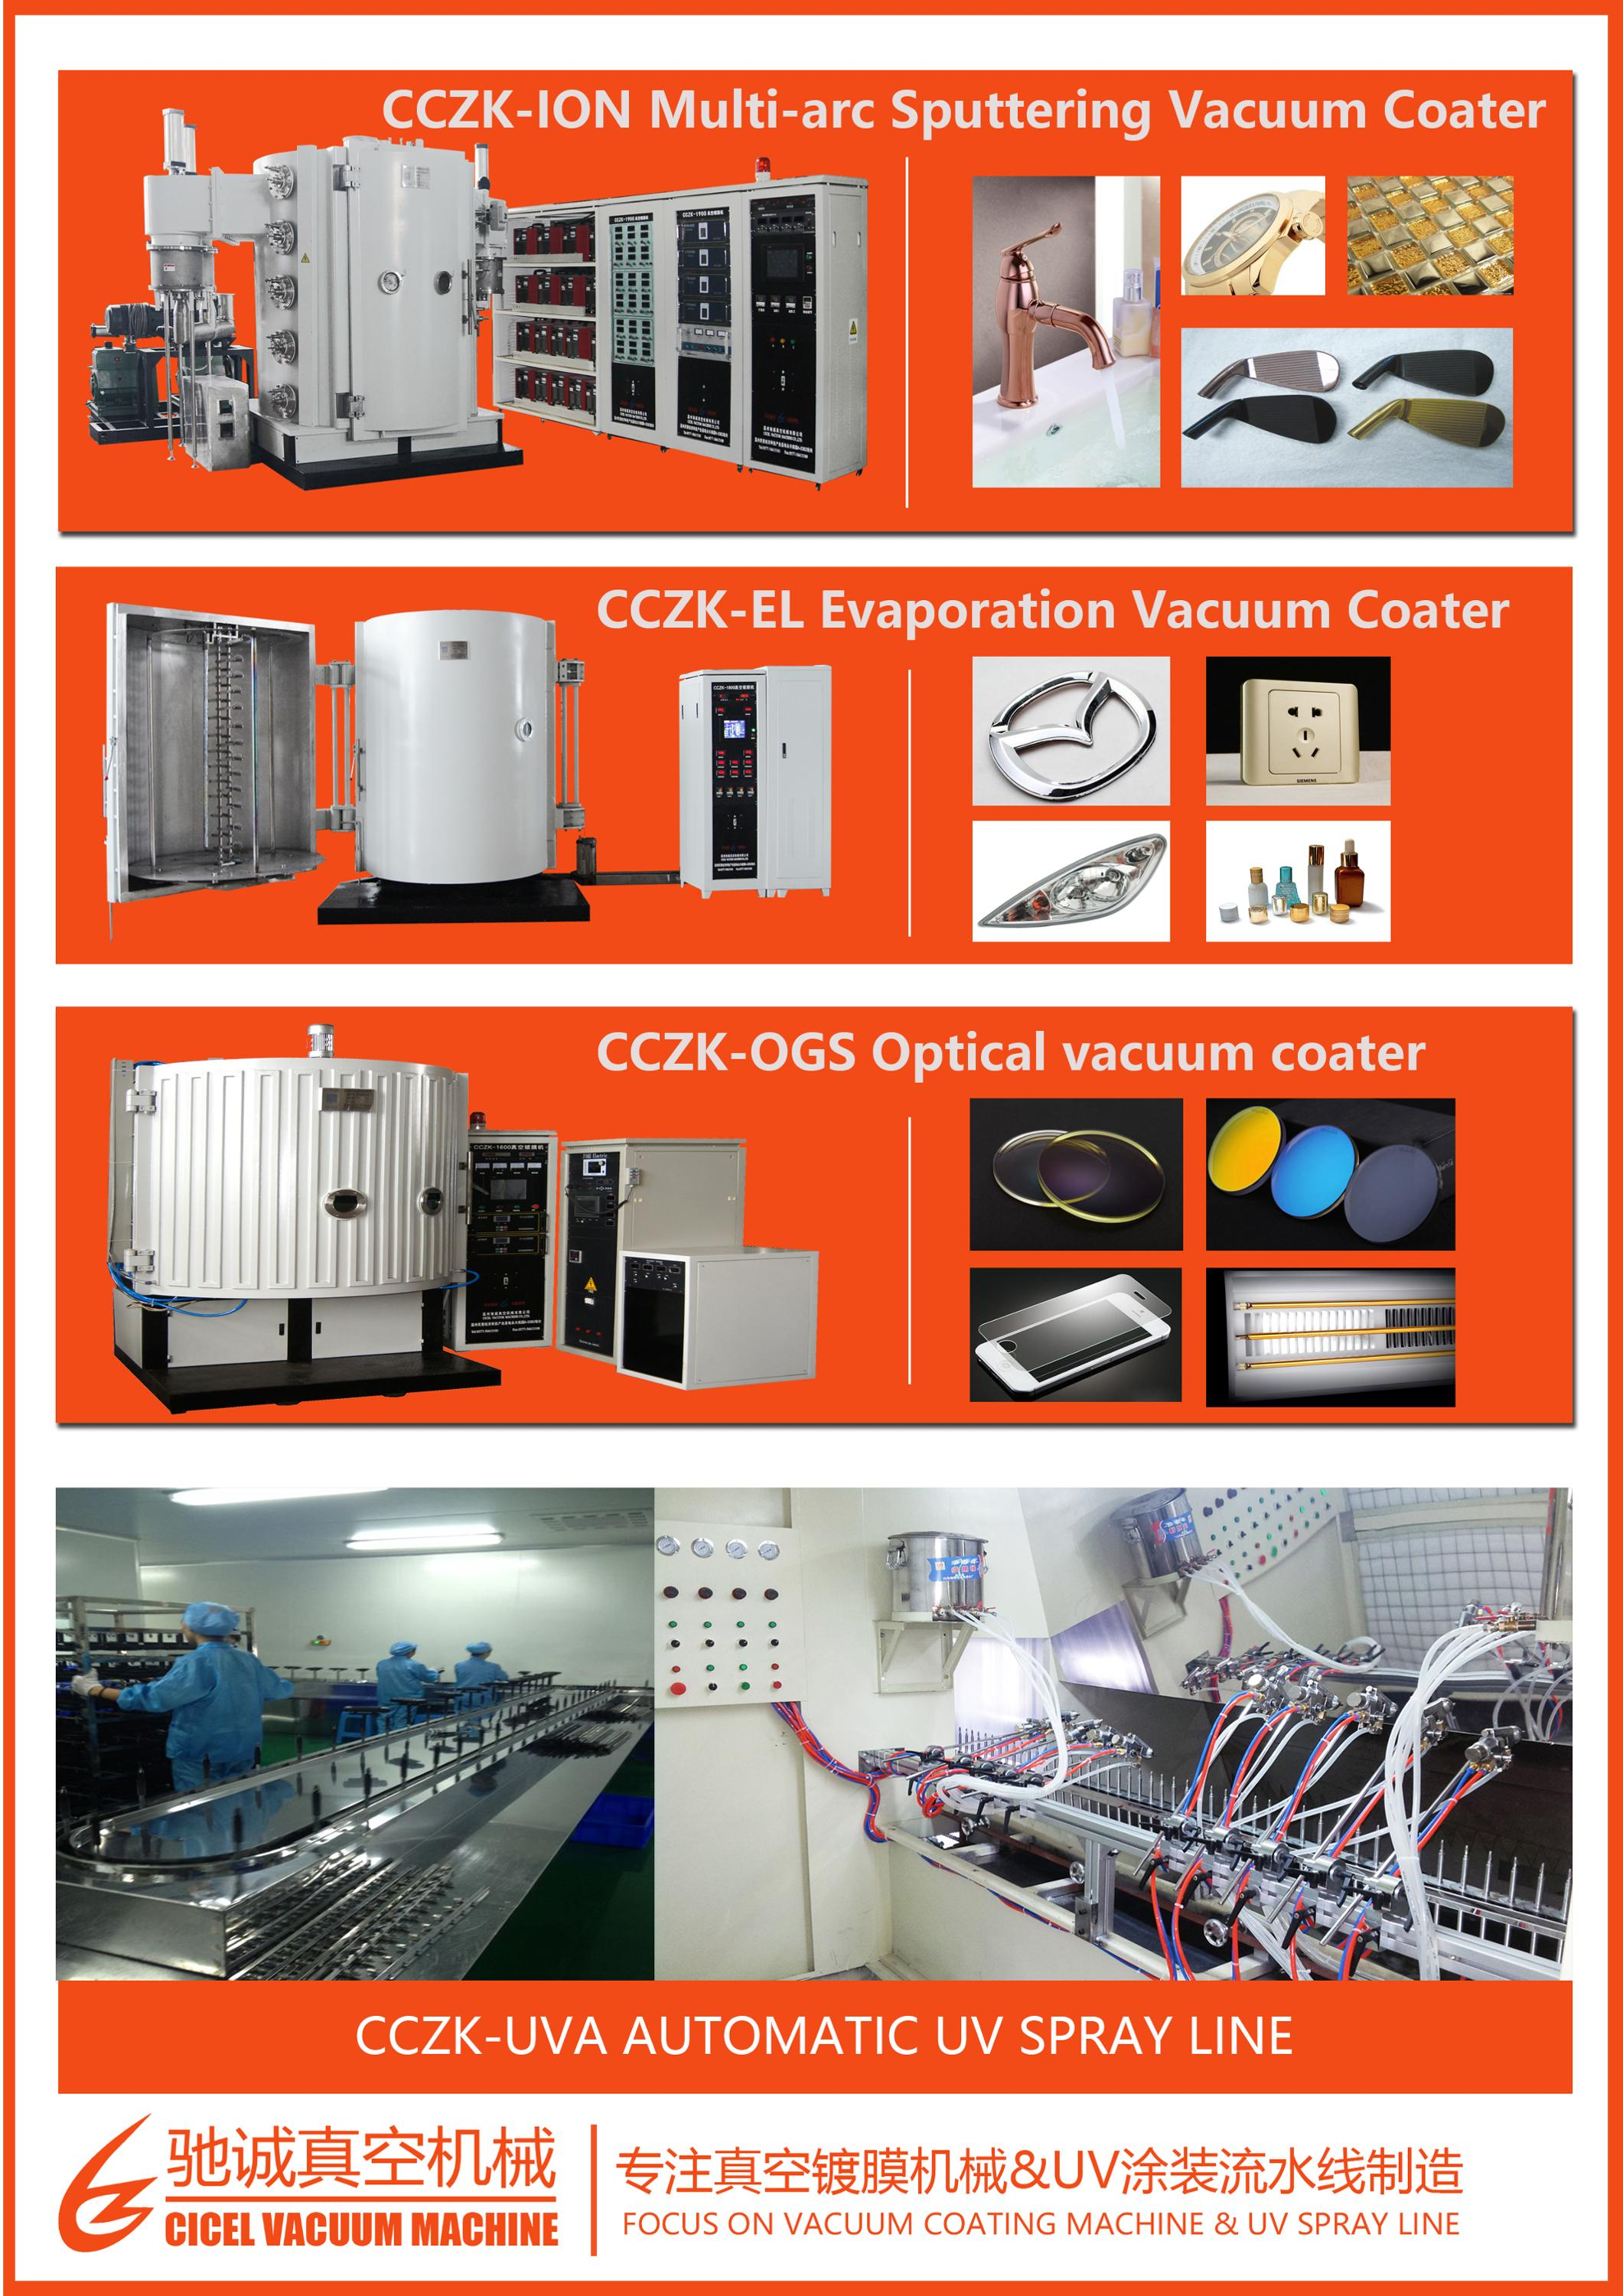 Plastic Auto Parts Vacuum Coating Machine, Aluminum Evaporation Vacuum Metallizing Machine, Silver Coating Equipment